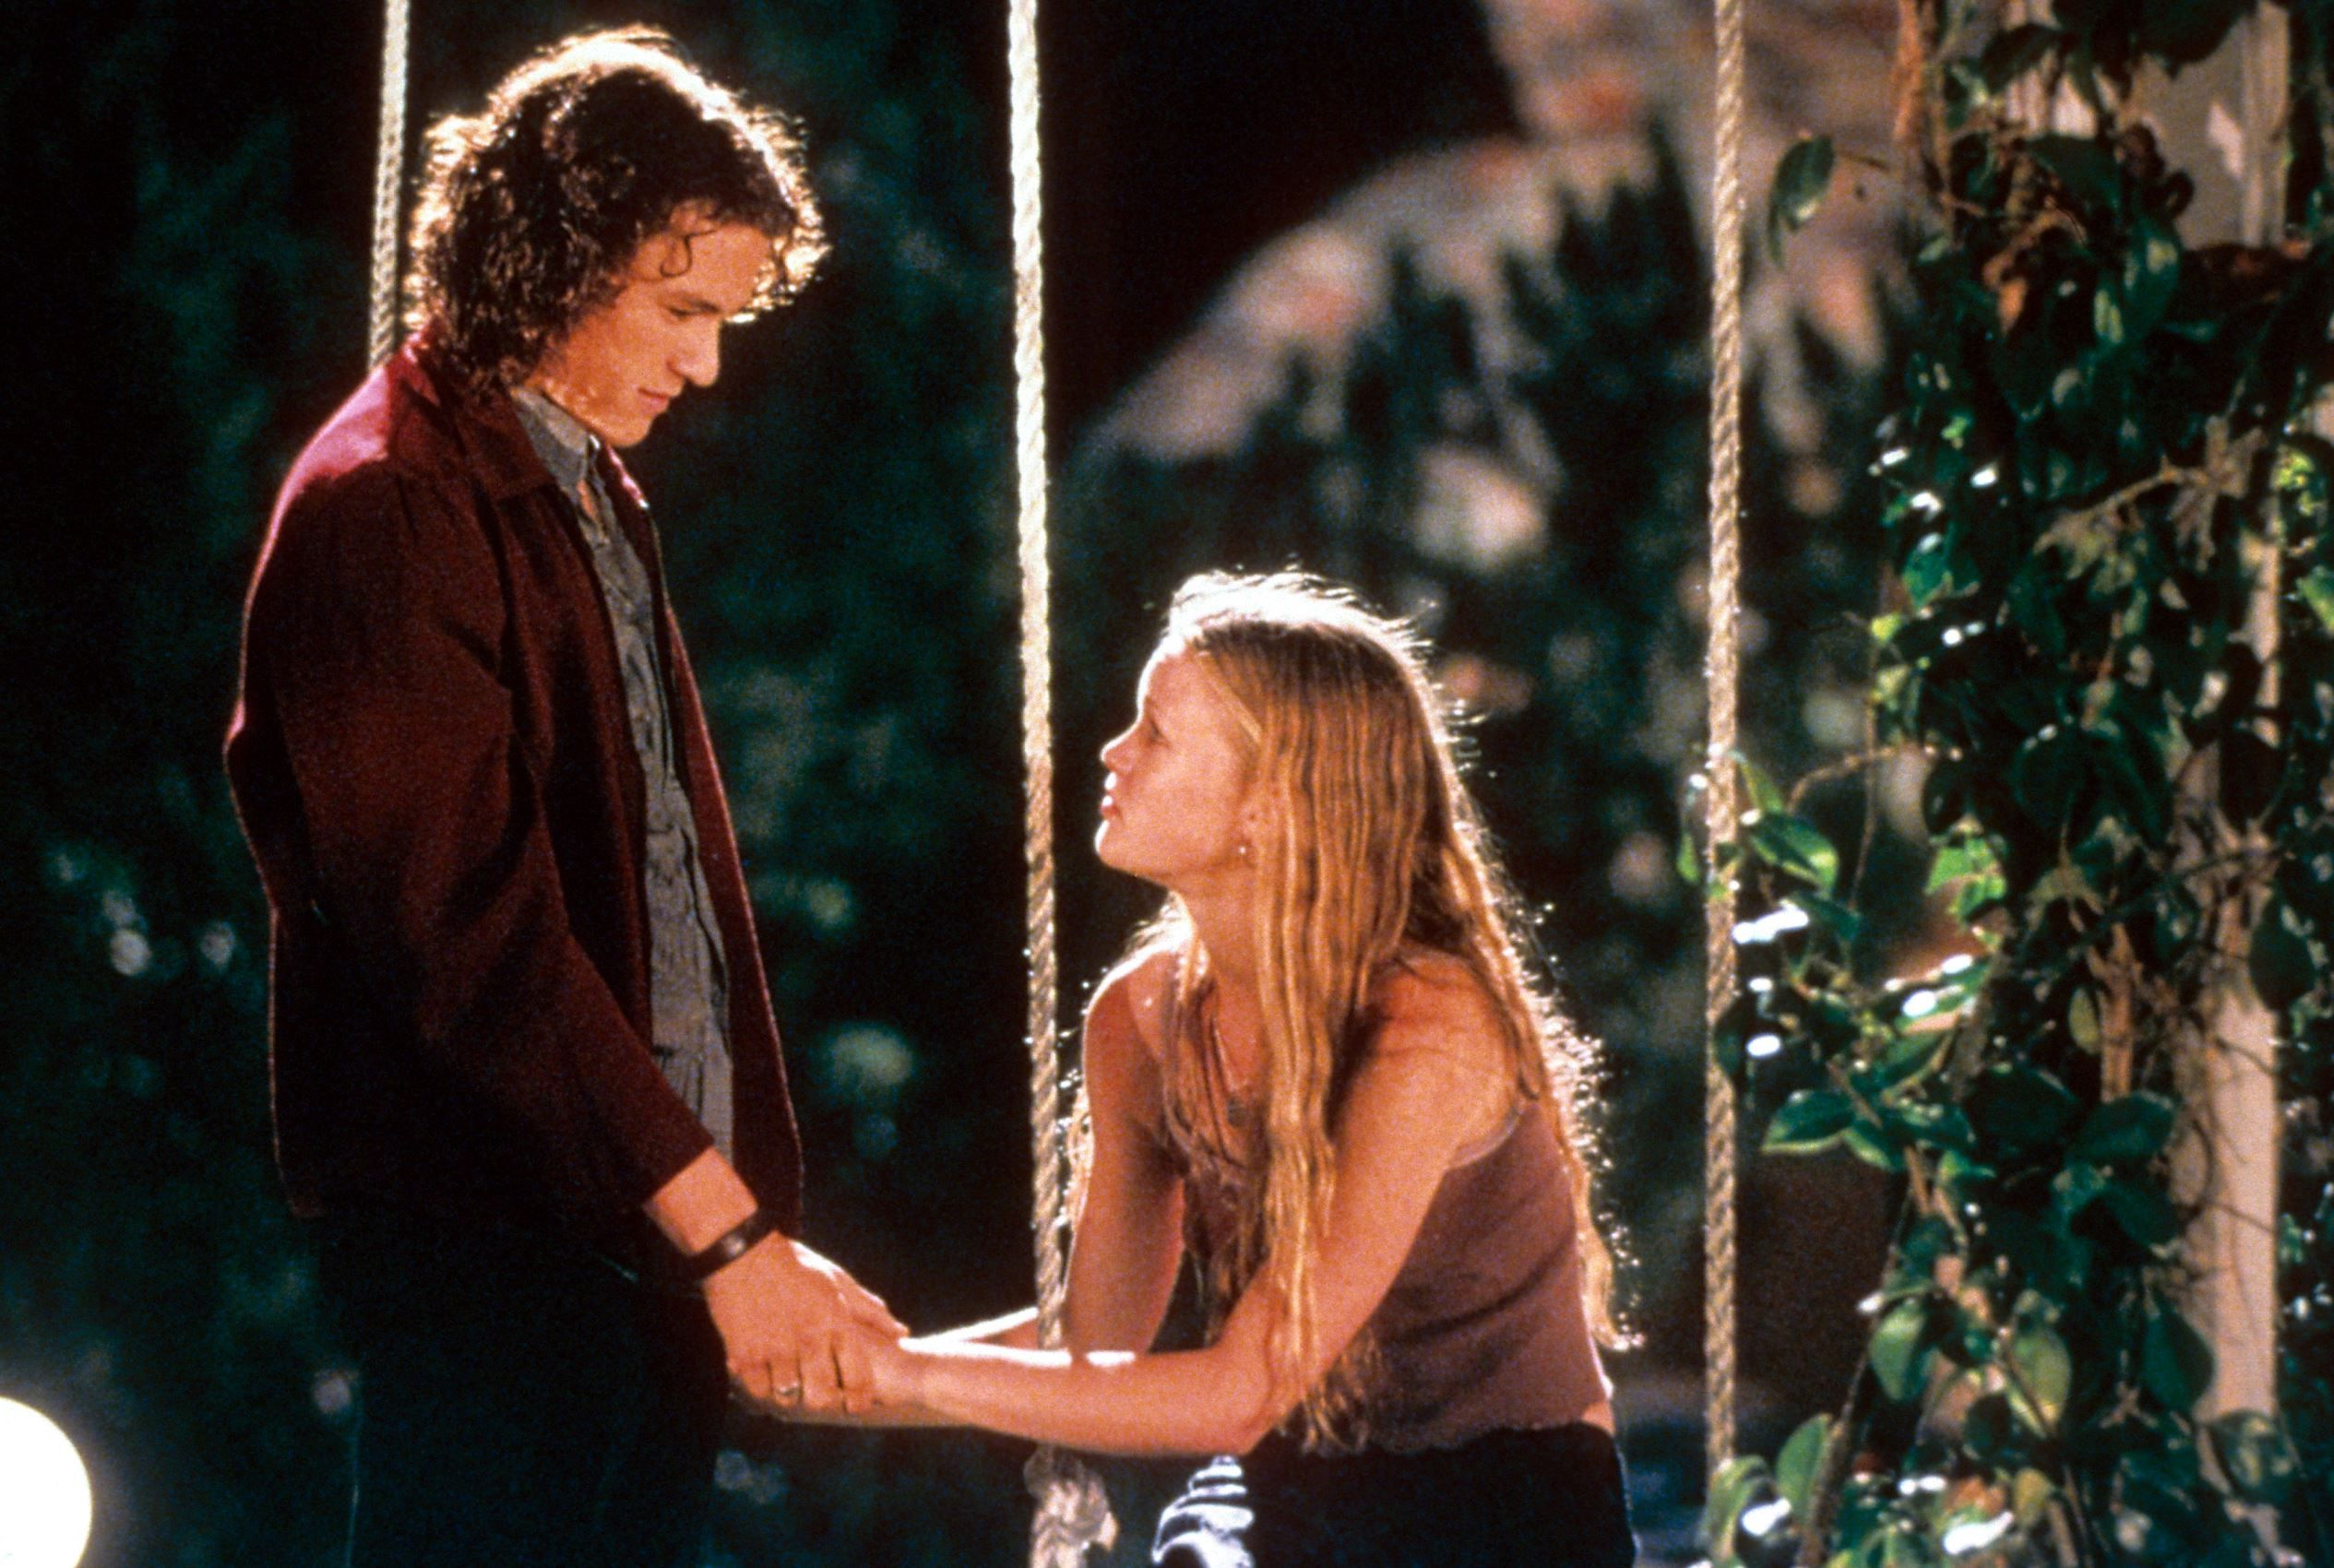 59 Great Movie Couples Heath Ledger And Julia Stiles As Patrick